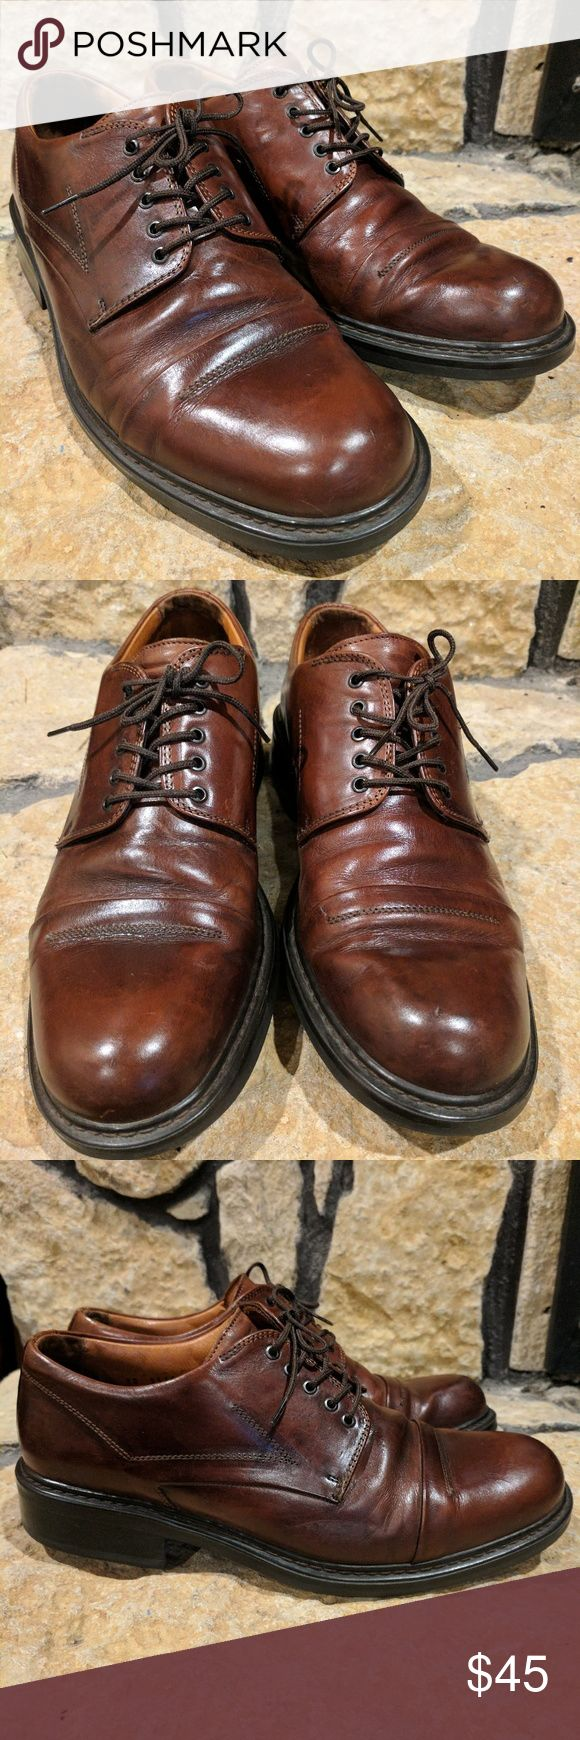 EUC Johnston & Murphy Passport Lace ups These Passports are in EUC! Cap toe. Rich calfskin with subtle stitching detail. Handcrafted in Italy Leather lining. Rubber sole and heel. Small stitching flaw on the back of one shoe, see photos. Bottoms are hardly worn! Don't miss out! Johnston & Murphy Shoes Oxfords & Derbys